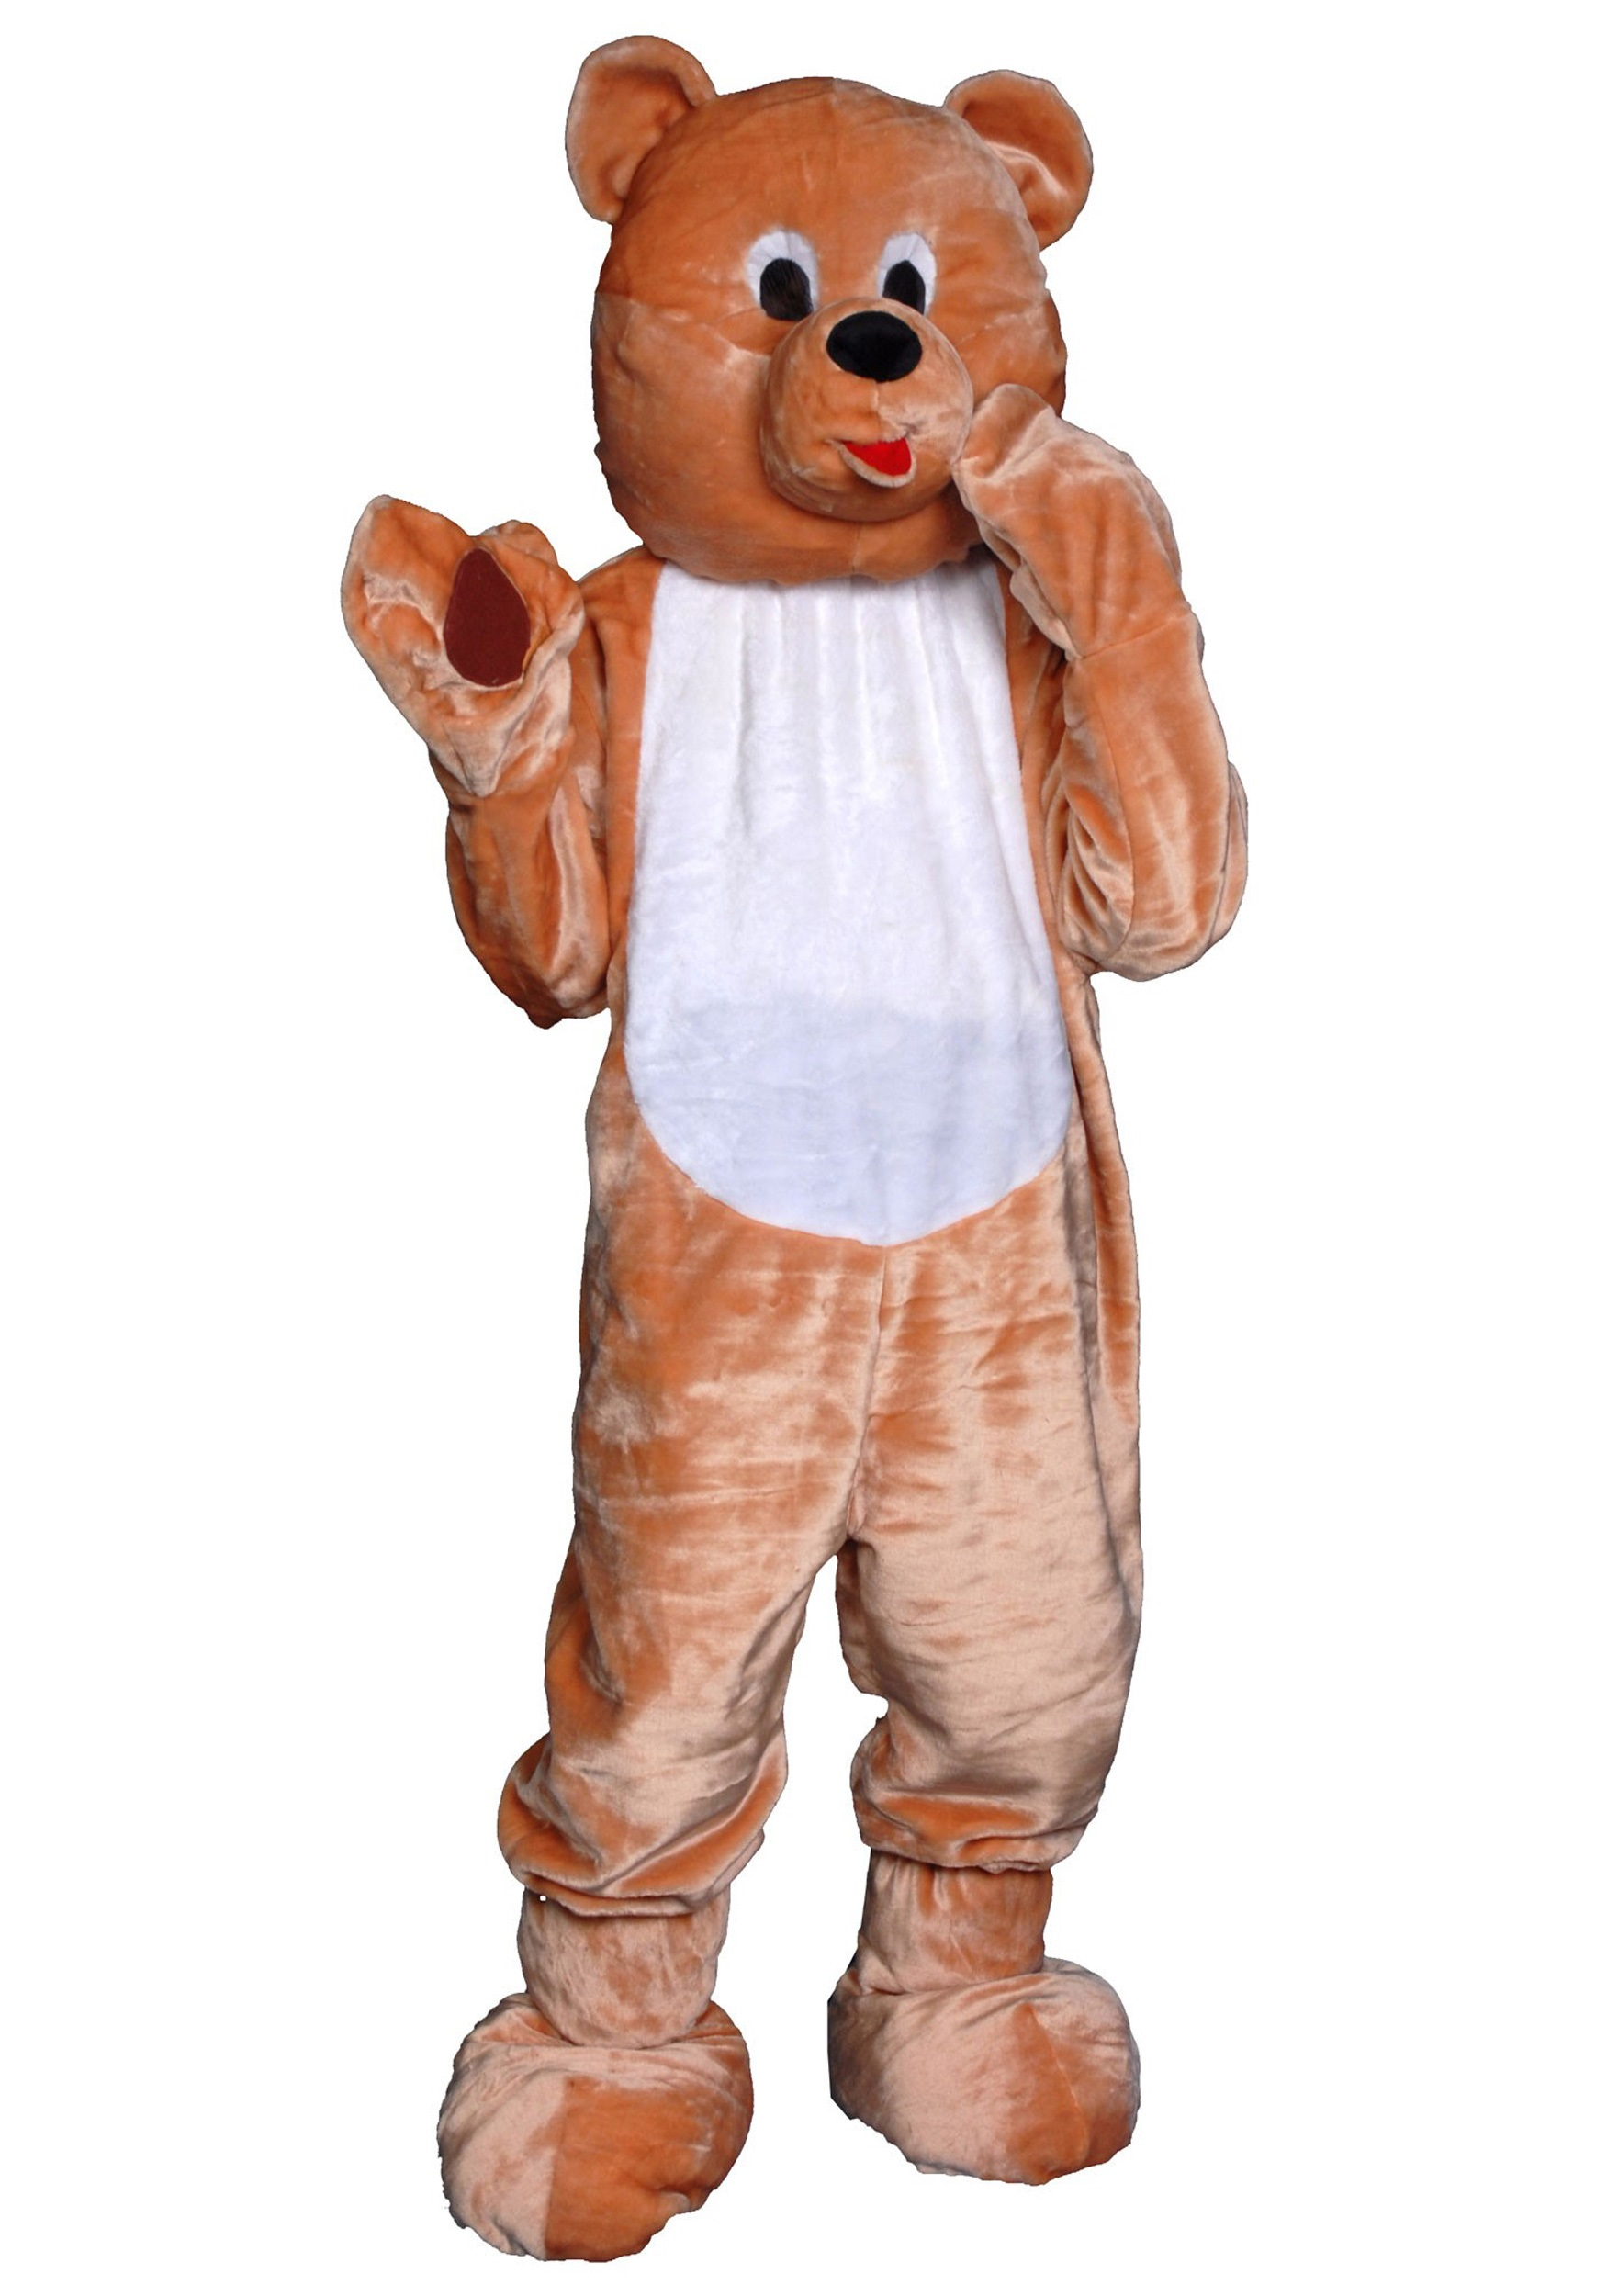 Teddy Bear Mascot Costume  sc 1 st  Costumes Galore & Teddy Bear Mascot Costume - Goldilocks and the Three Bears Costumes